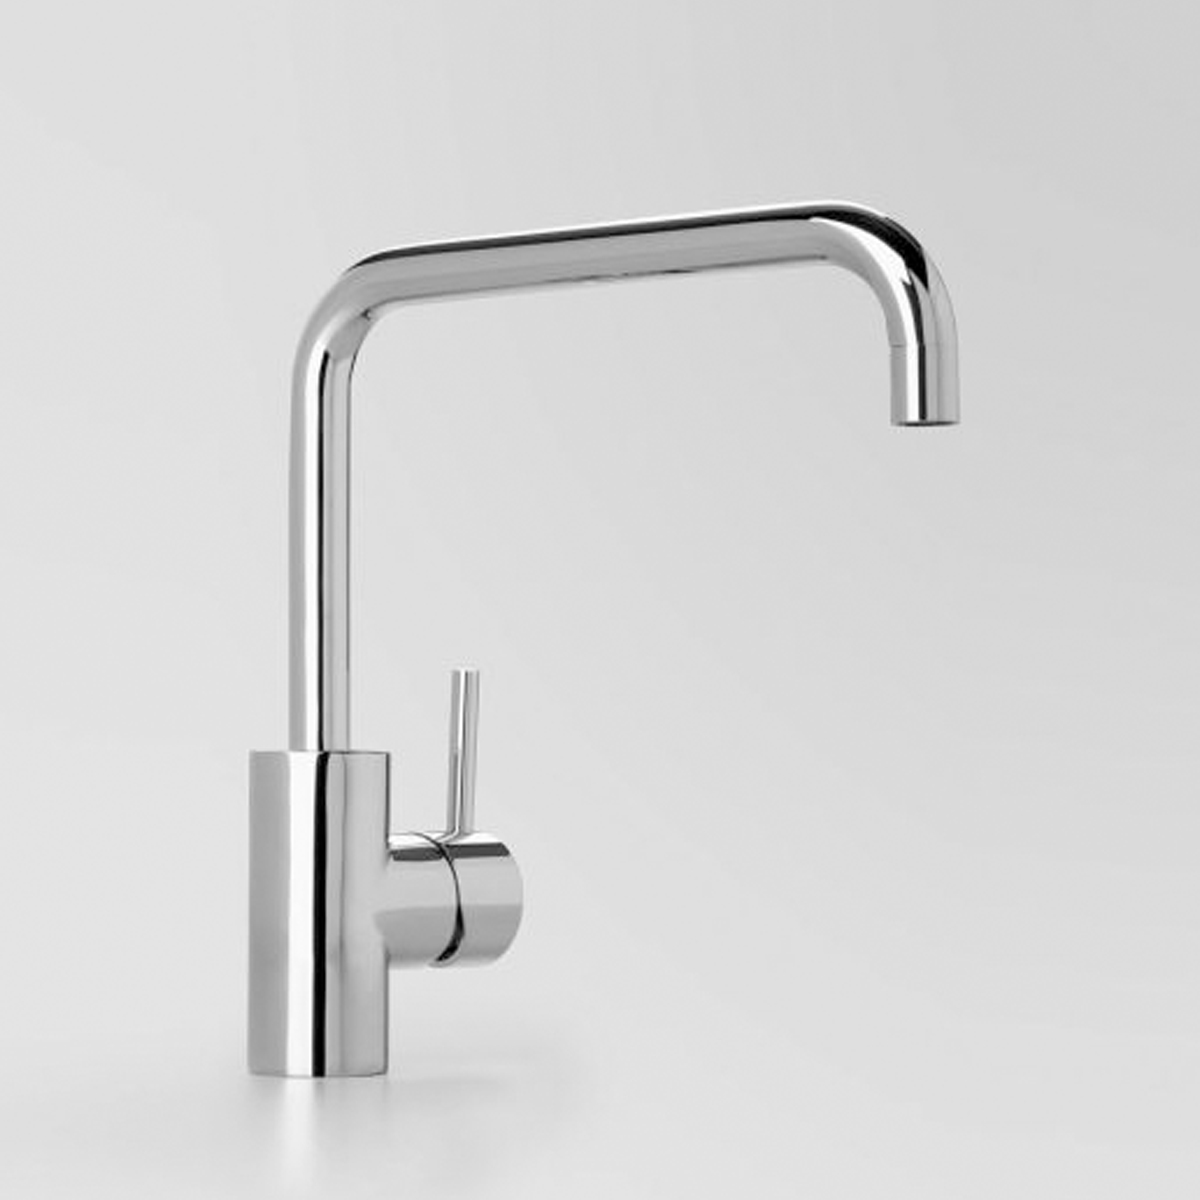 Astra Walker A69.08.V2 Sink Mixer with Swivel Spout